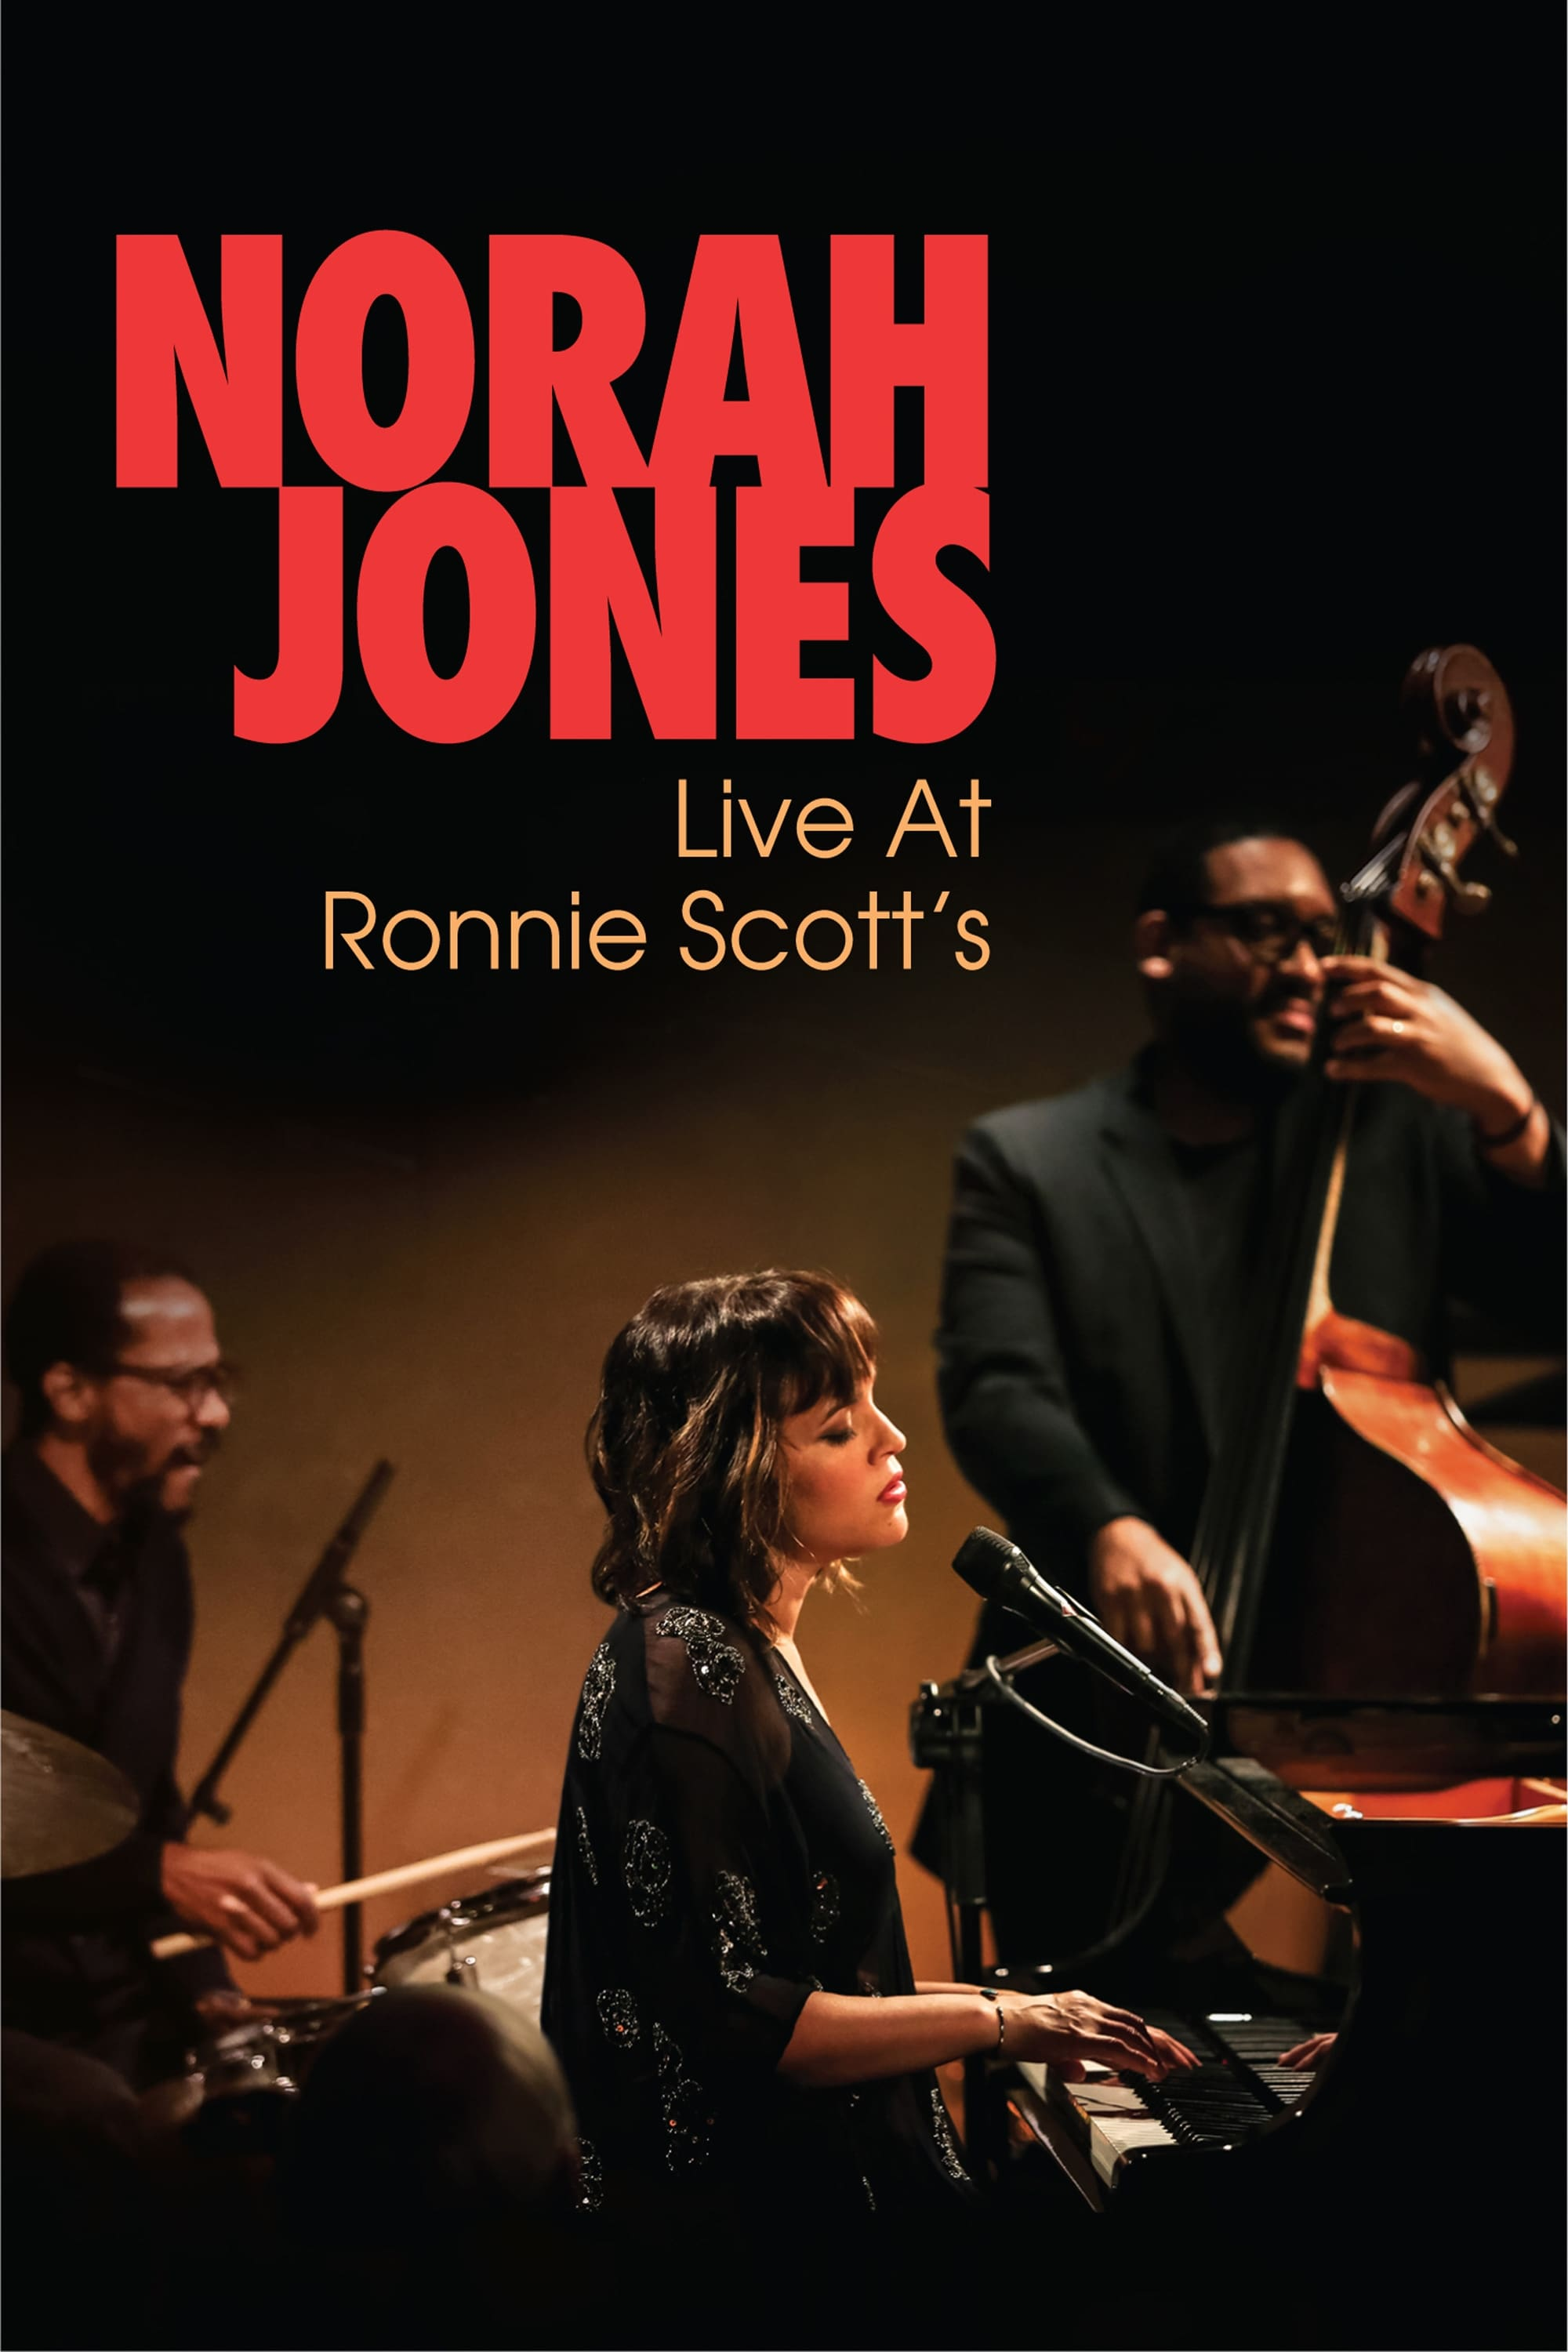 Norah Jones Live At Ronnie Scott's (2018)